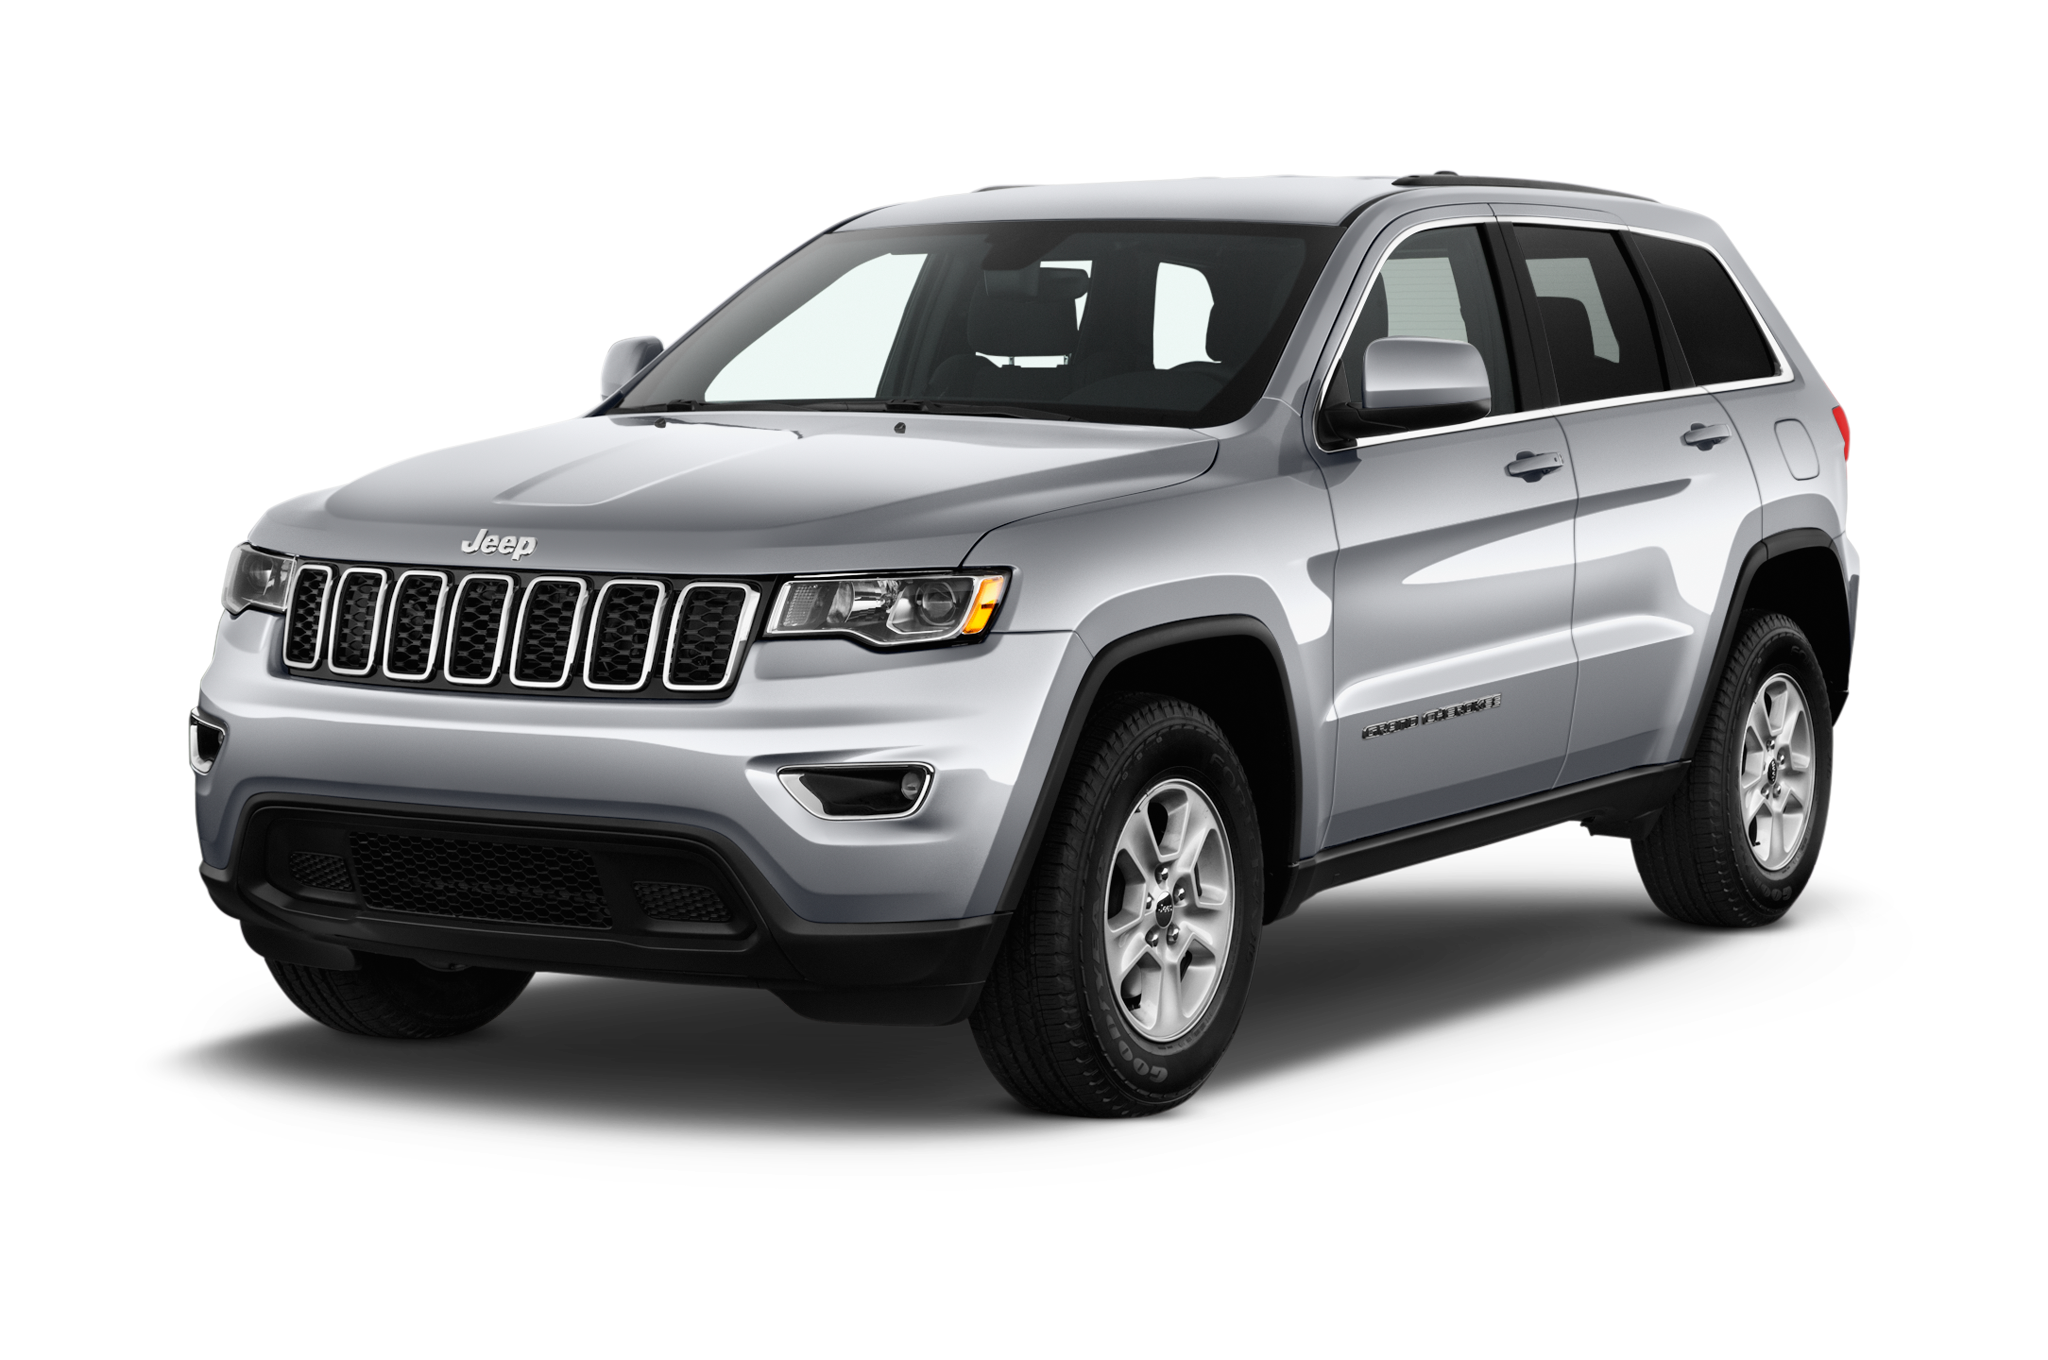 Jeep cherokee png. Grand reviews and